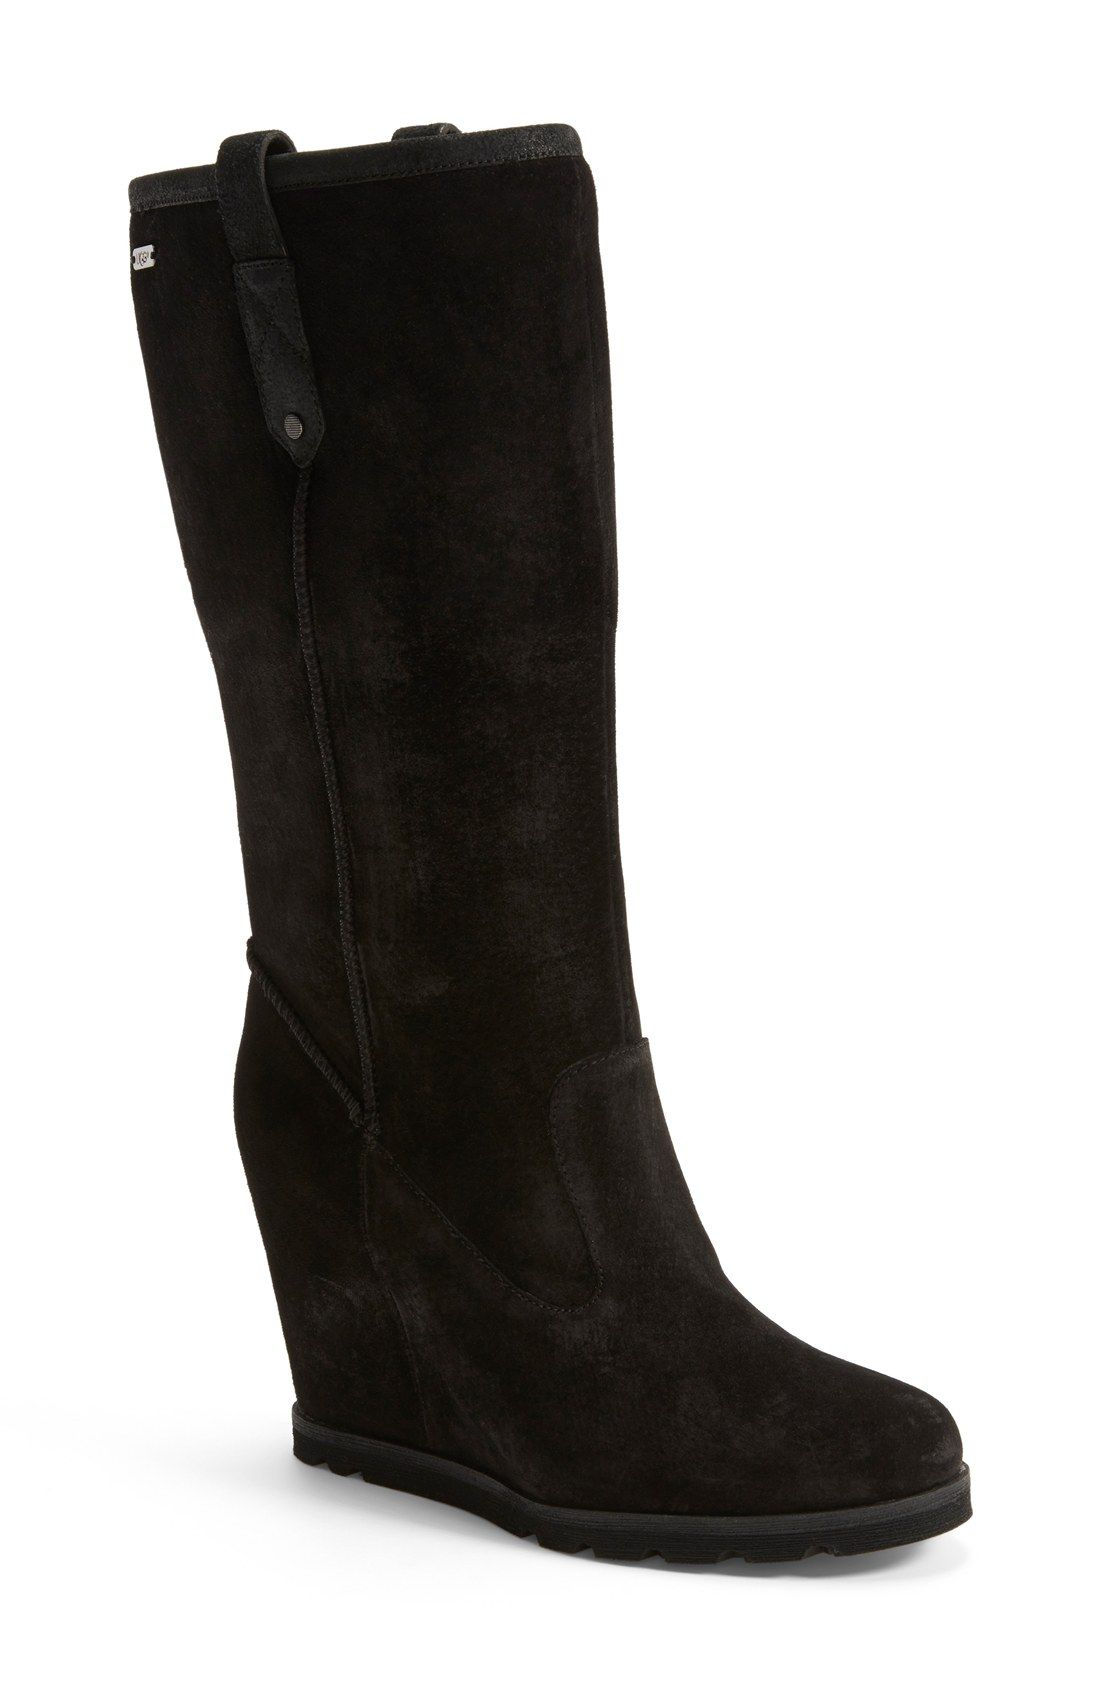 Womens Boots UGG Soleil Black Suede/Leather